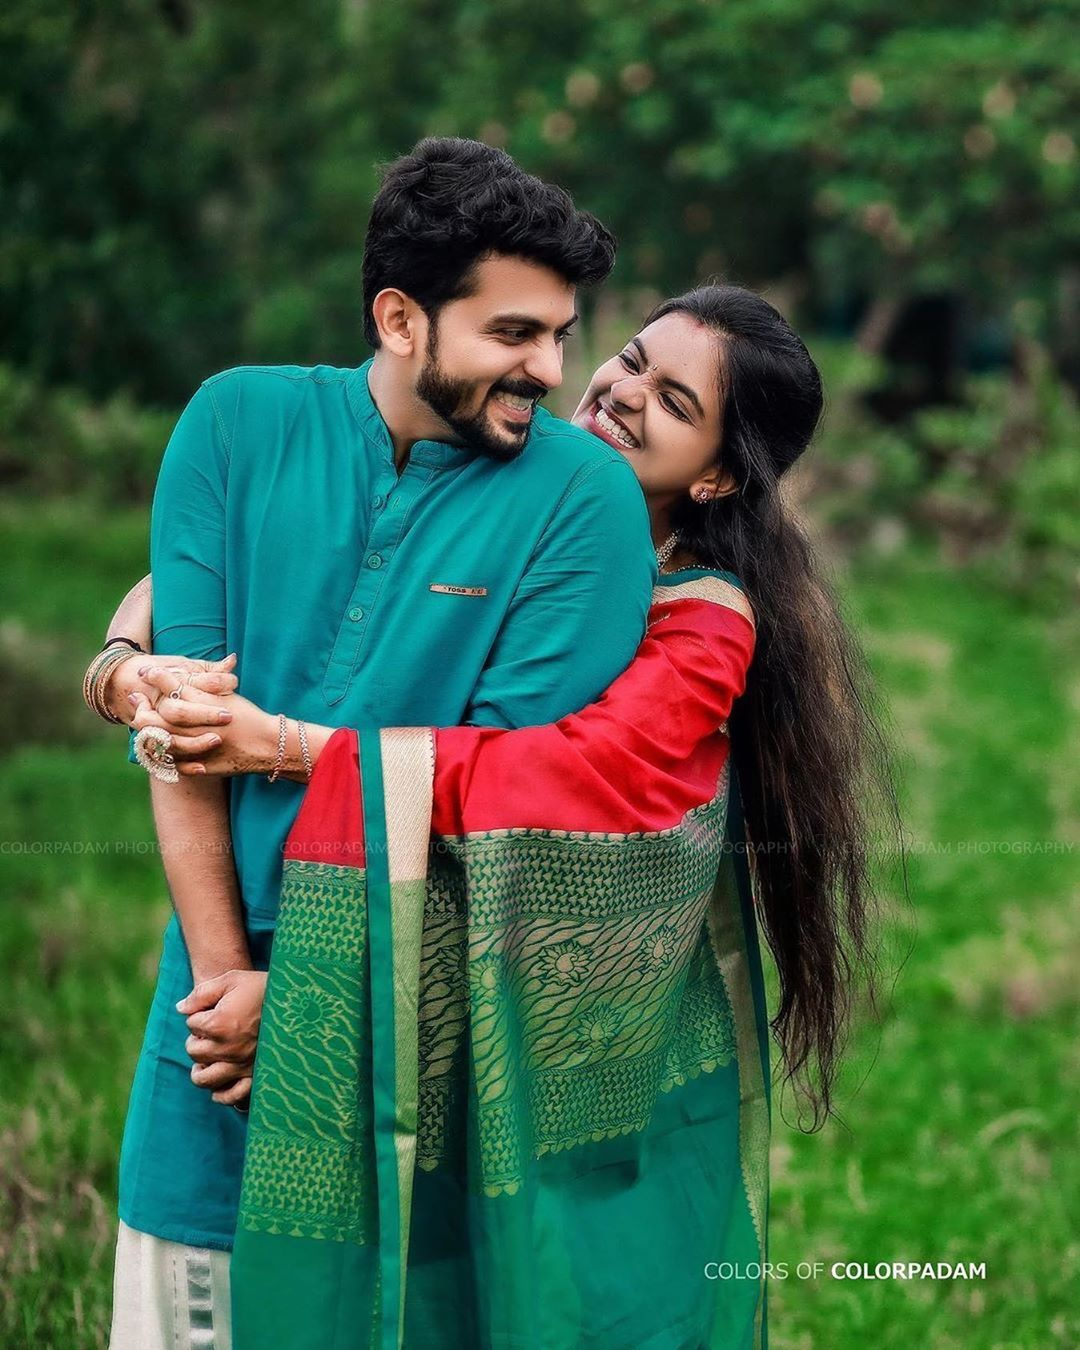 190 Wedding Ideas In 2021 Kerala Wedding Photography Wedding Couples Photography Indian Wedding Photography Photoshoot poses for couples cute photo shoot ideas for couples can be done in various poses. kerala wedding photography